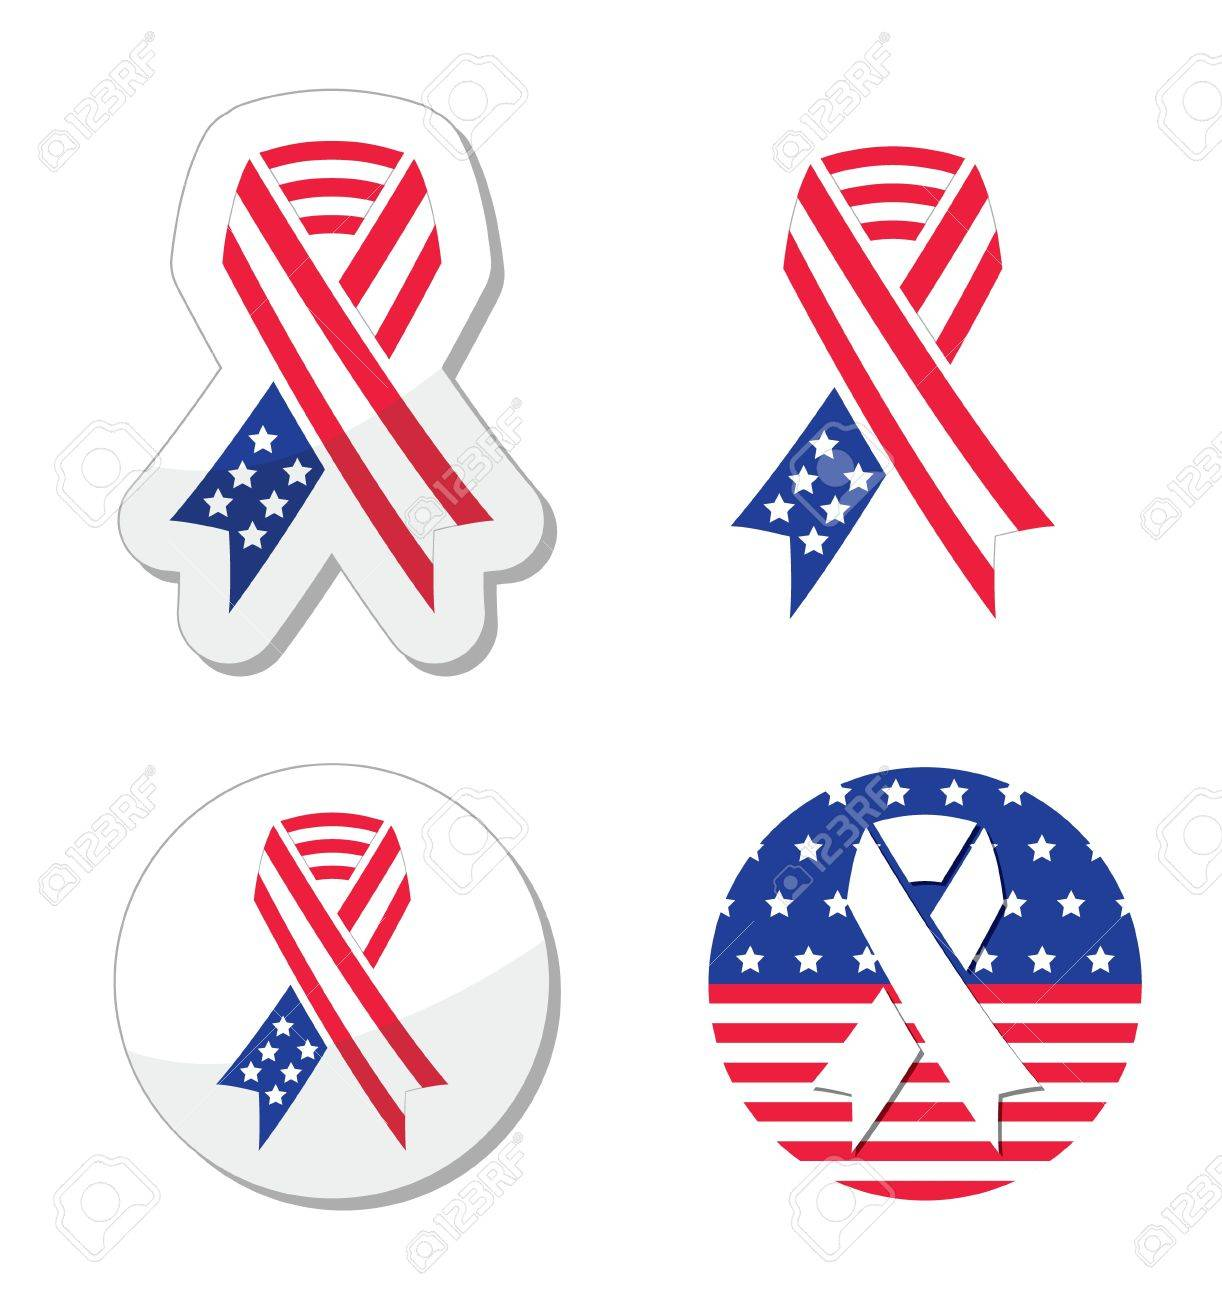 USA ribbon flag - symbol of patriotism, the victims and heros of the 9 11 attacks Stock Vector - 17660553